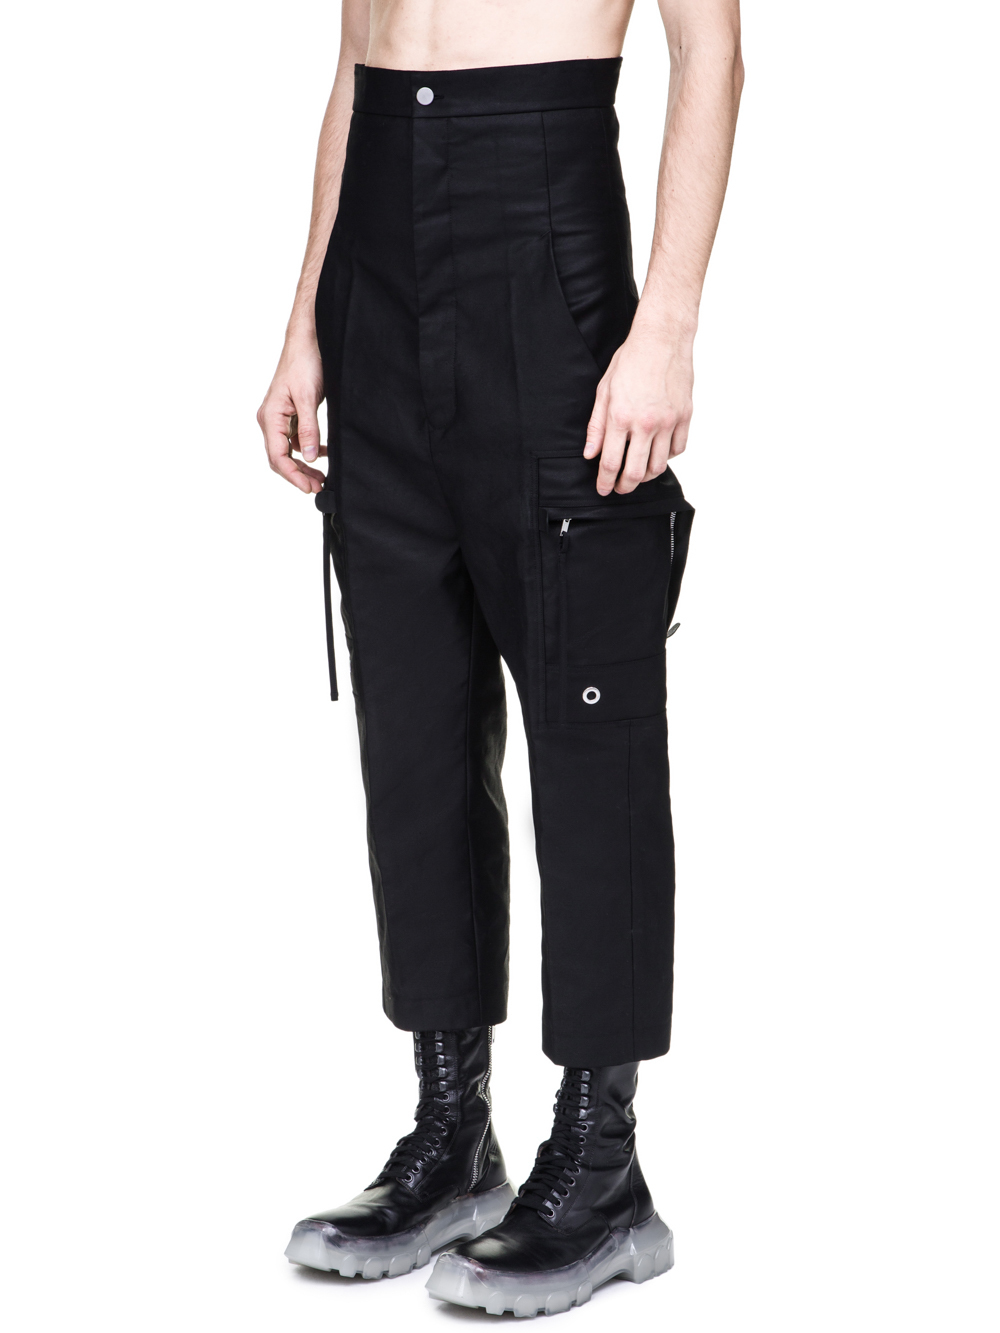 RICK OWENS OFF-THE-RUNWAY CARGO DIRT PANTS IN BLACK